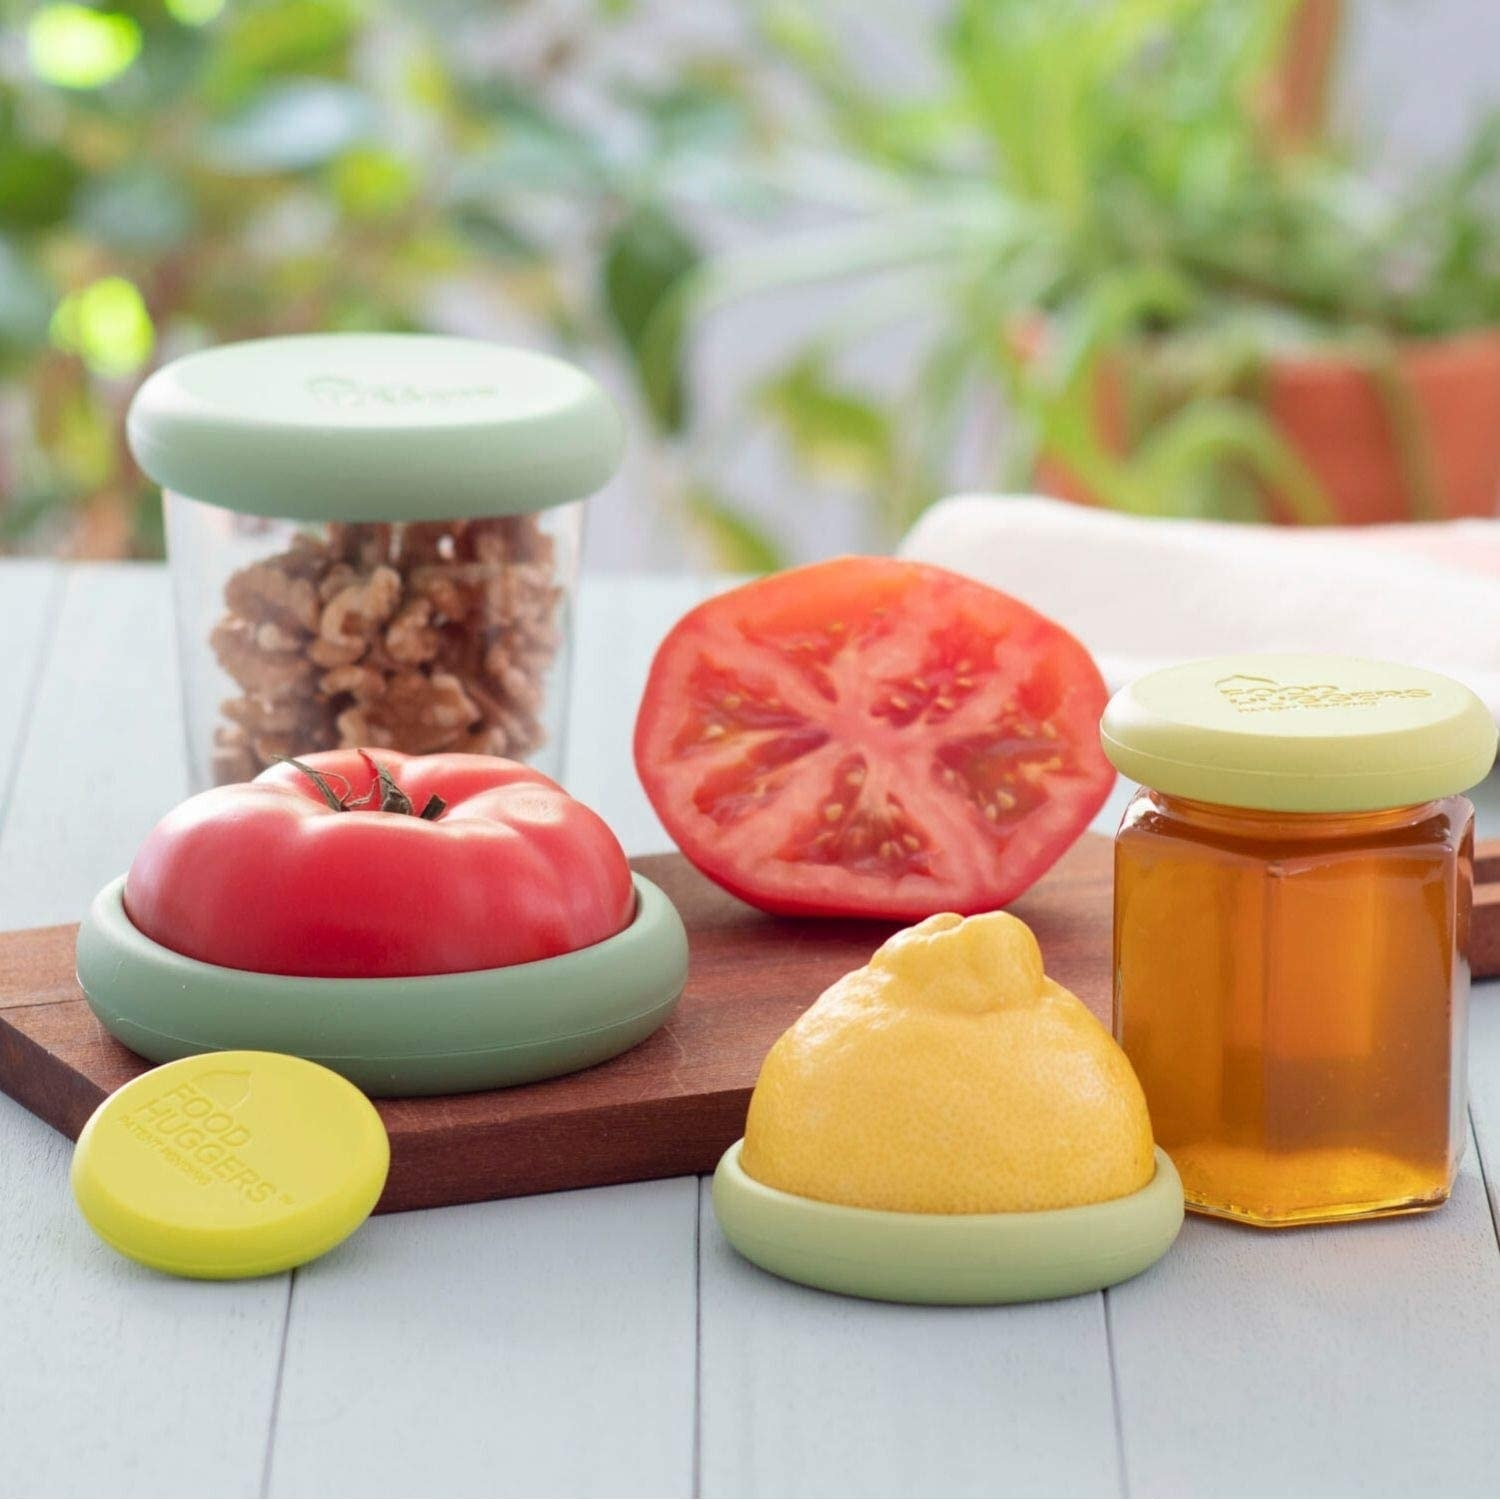 The huggers on different fruits and vegetables as well as open containers